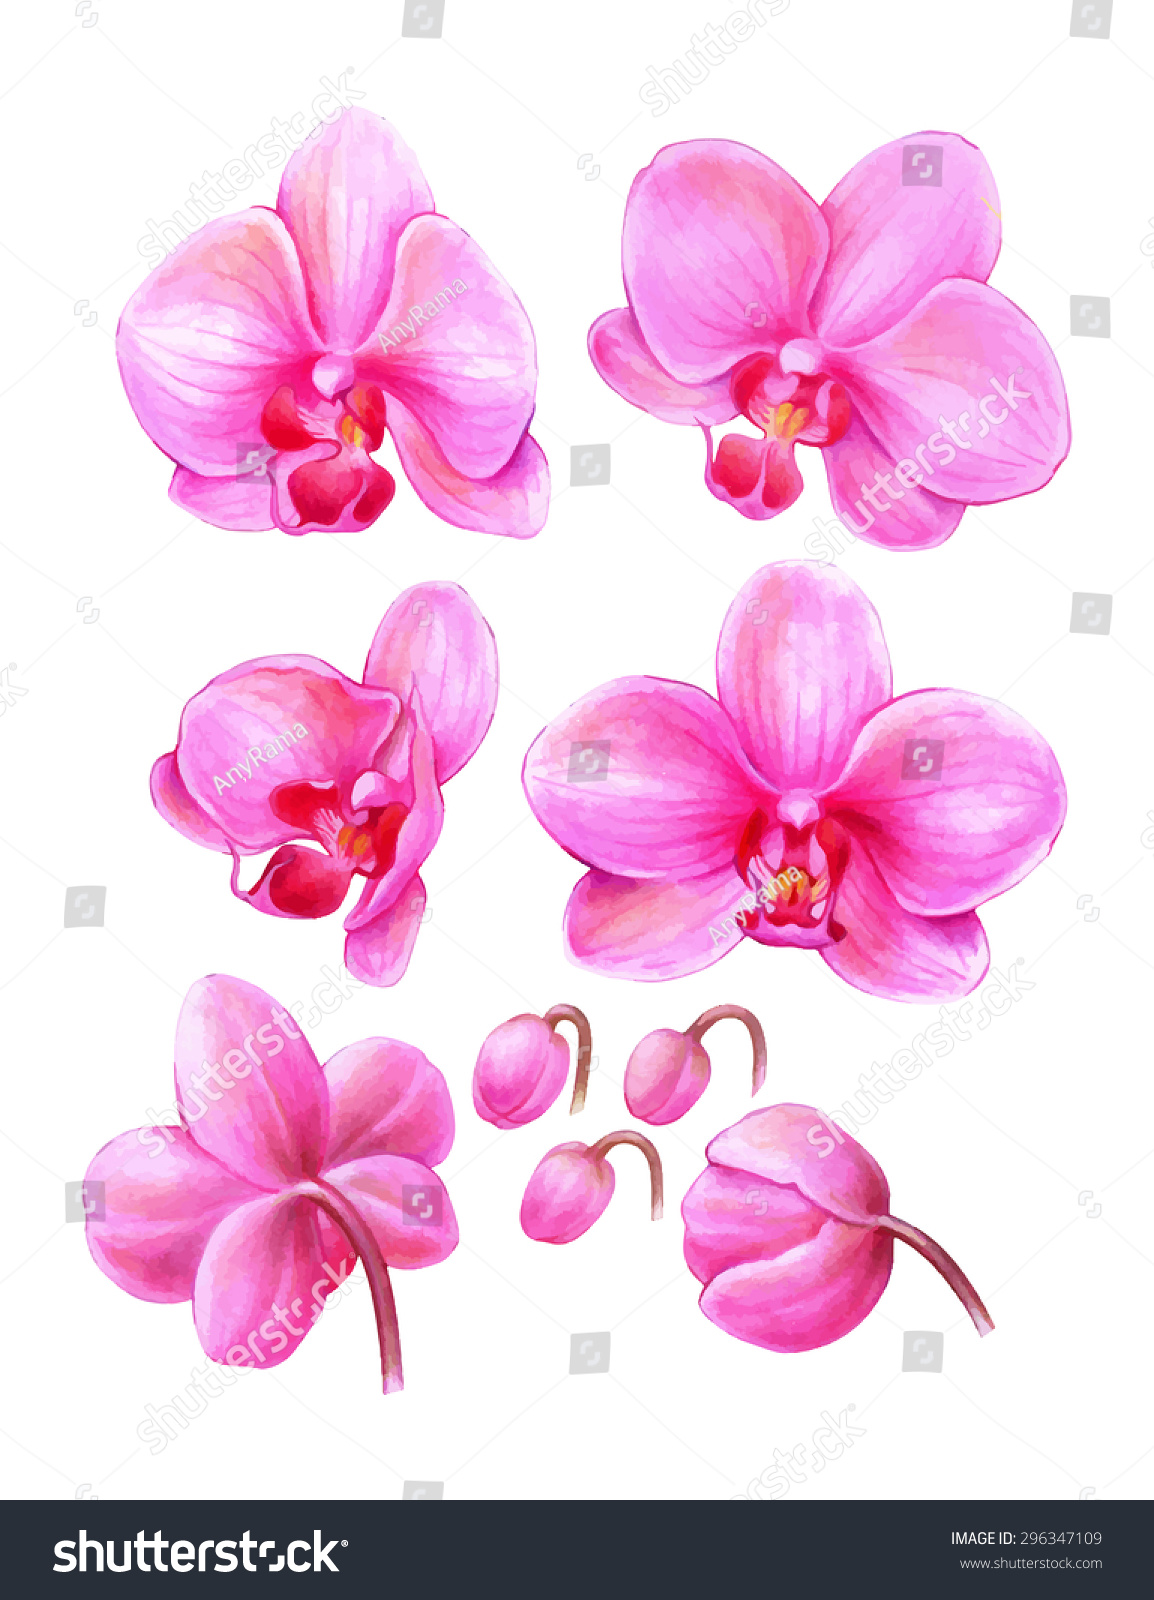 Uncategorized Orchid Drawings habrumalas pink orchid drawing images drawing